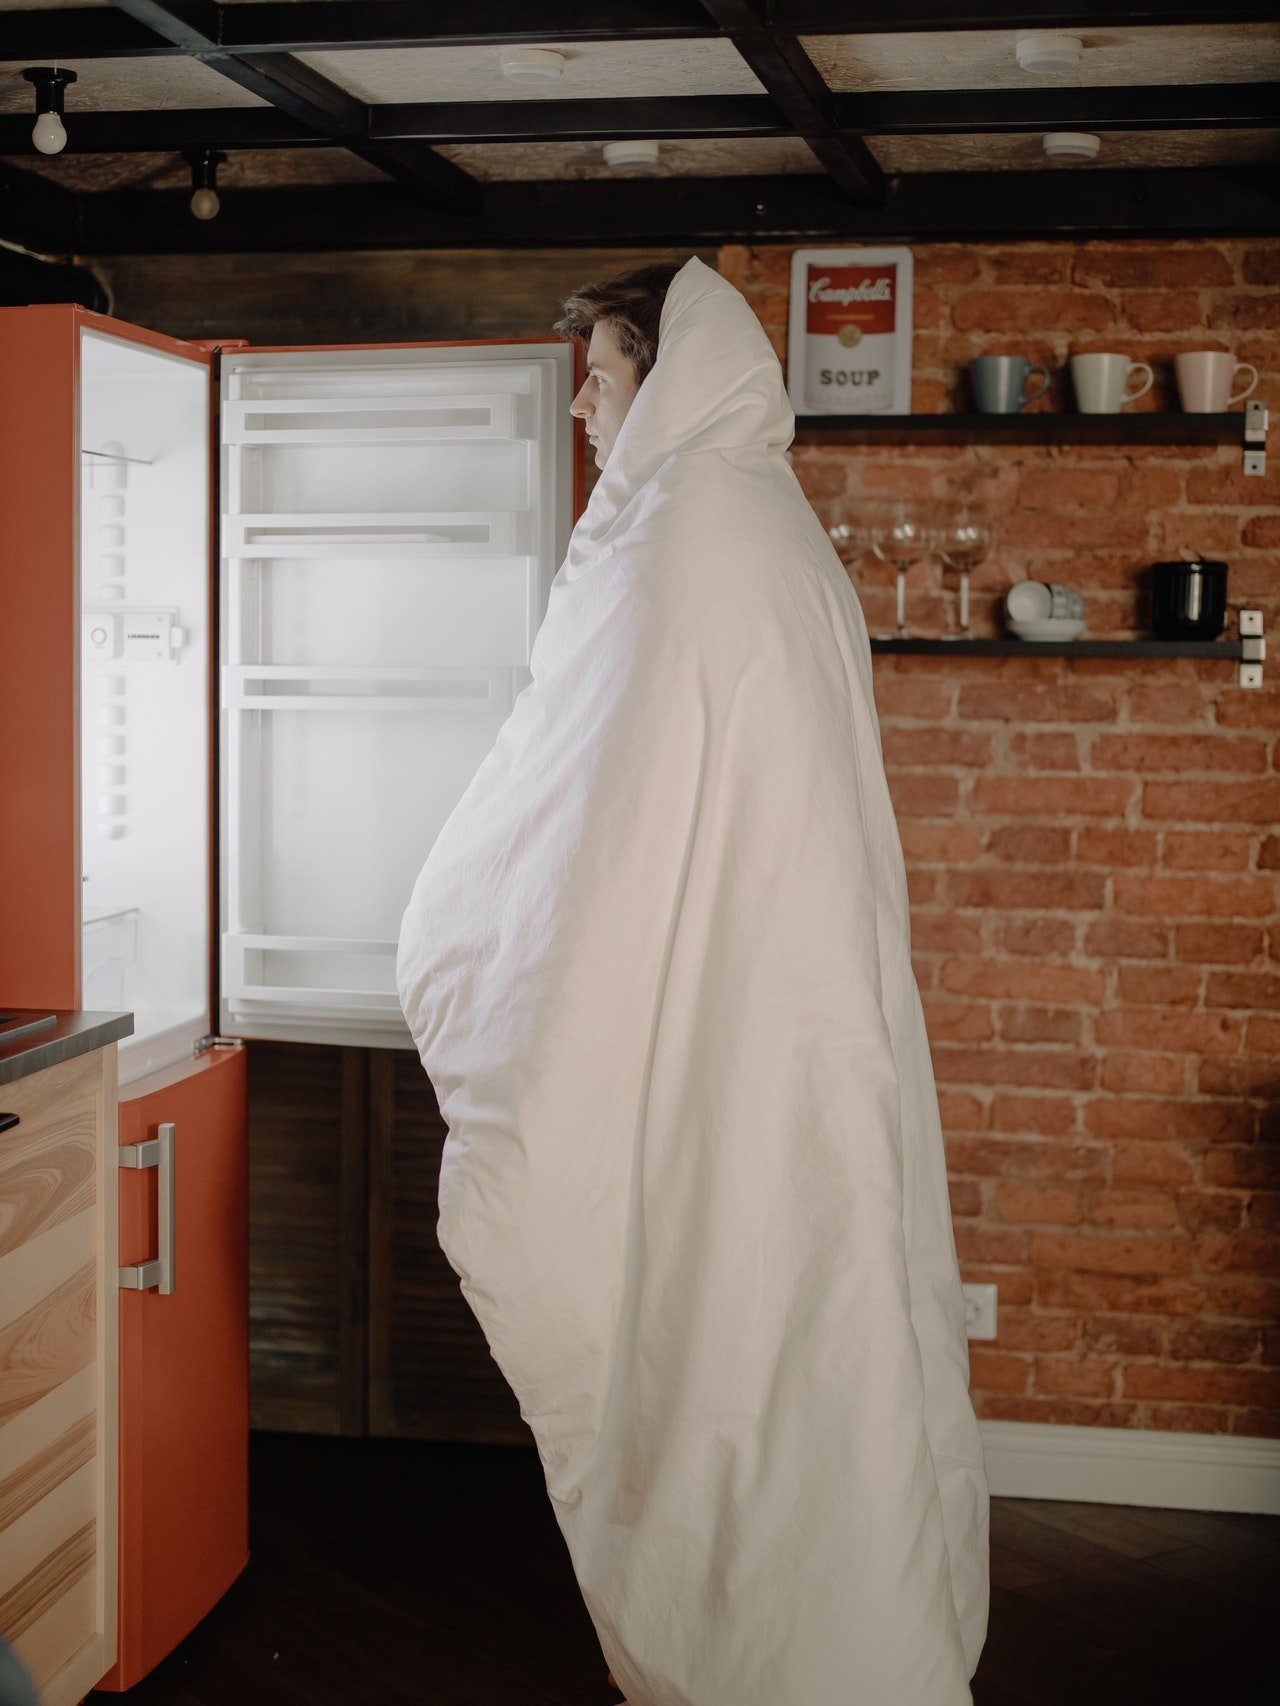 Photo of a man standing in front of an open refrigerator | Photo: Pexels